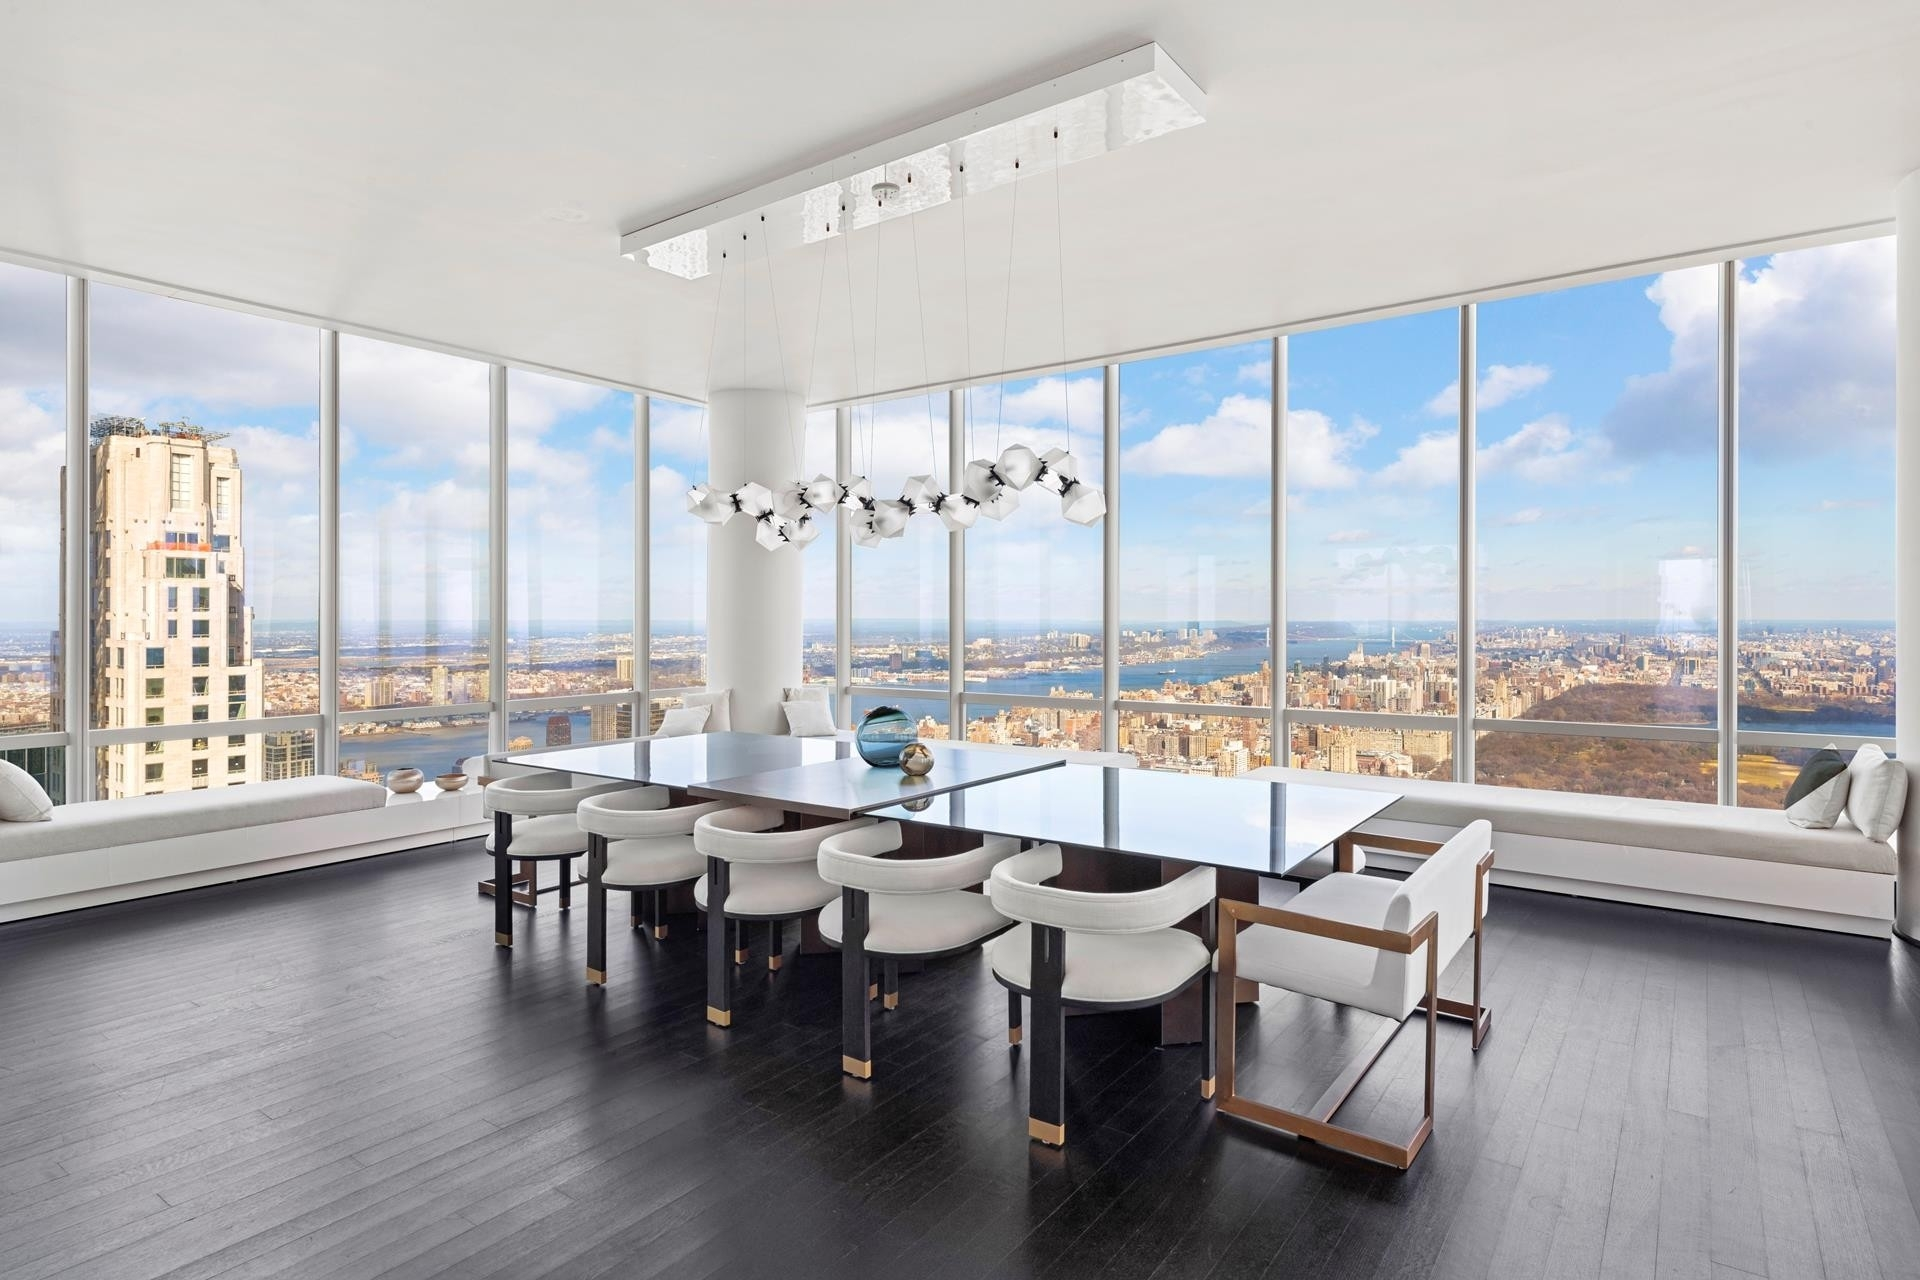 6. Condominiums for Sale at One57, 157 West 57th St, 87 Midtown West, New York, NY 10019